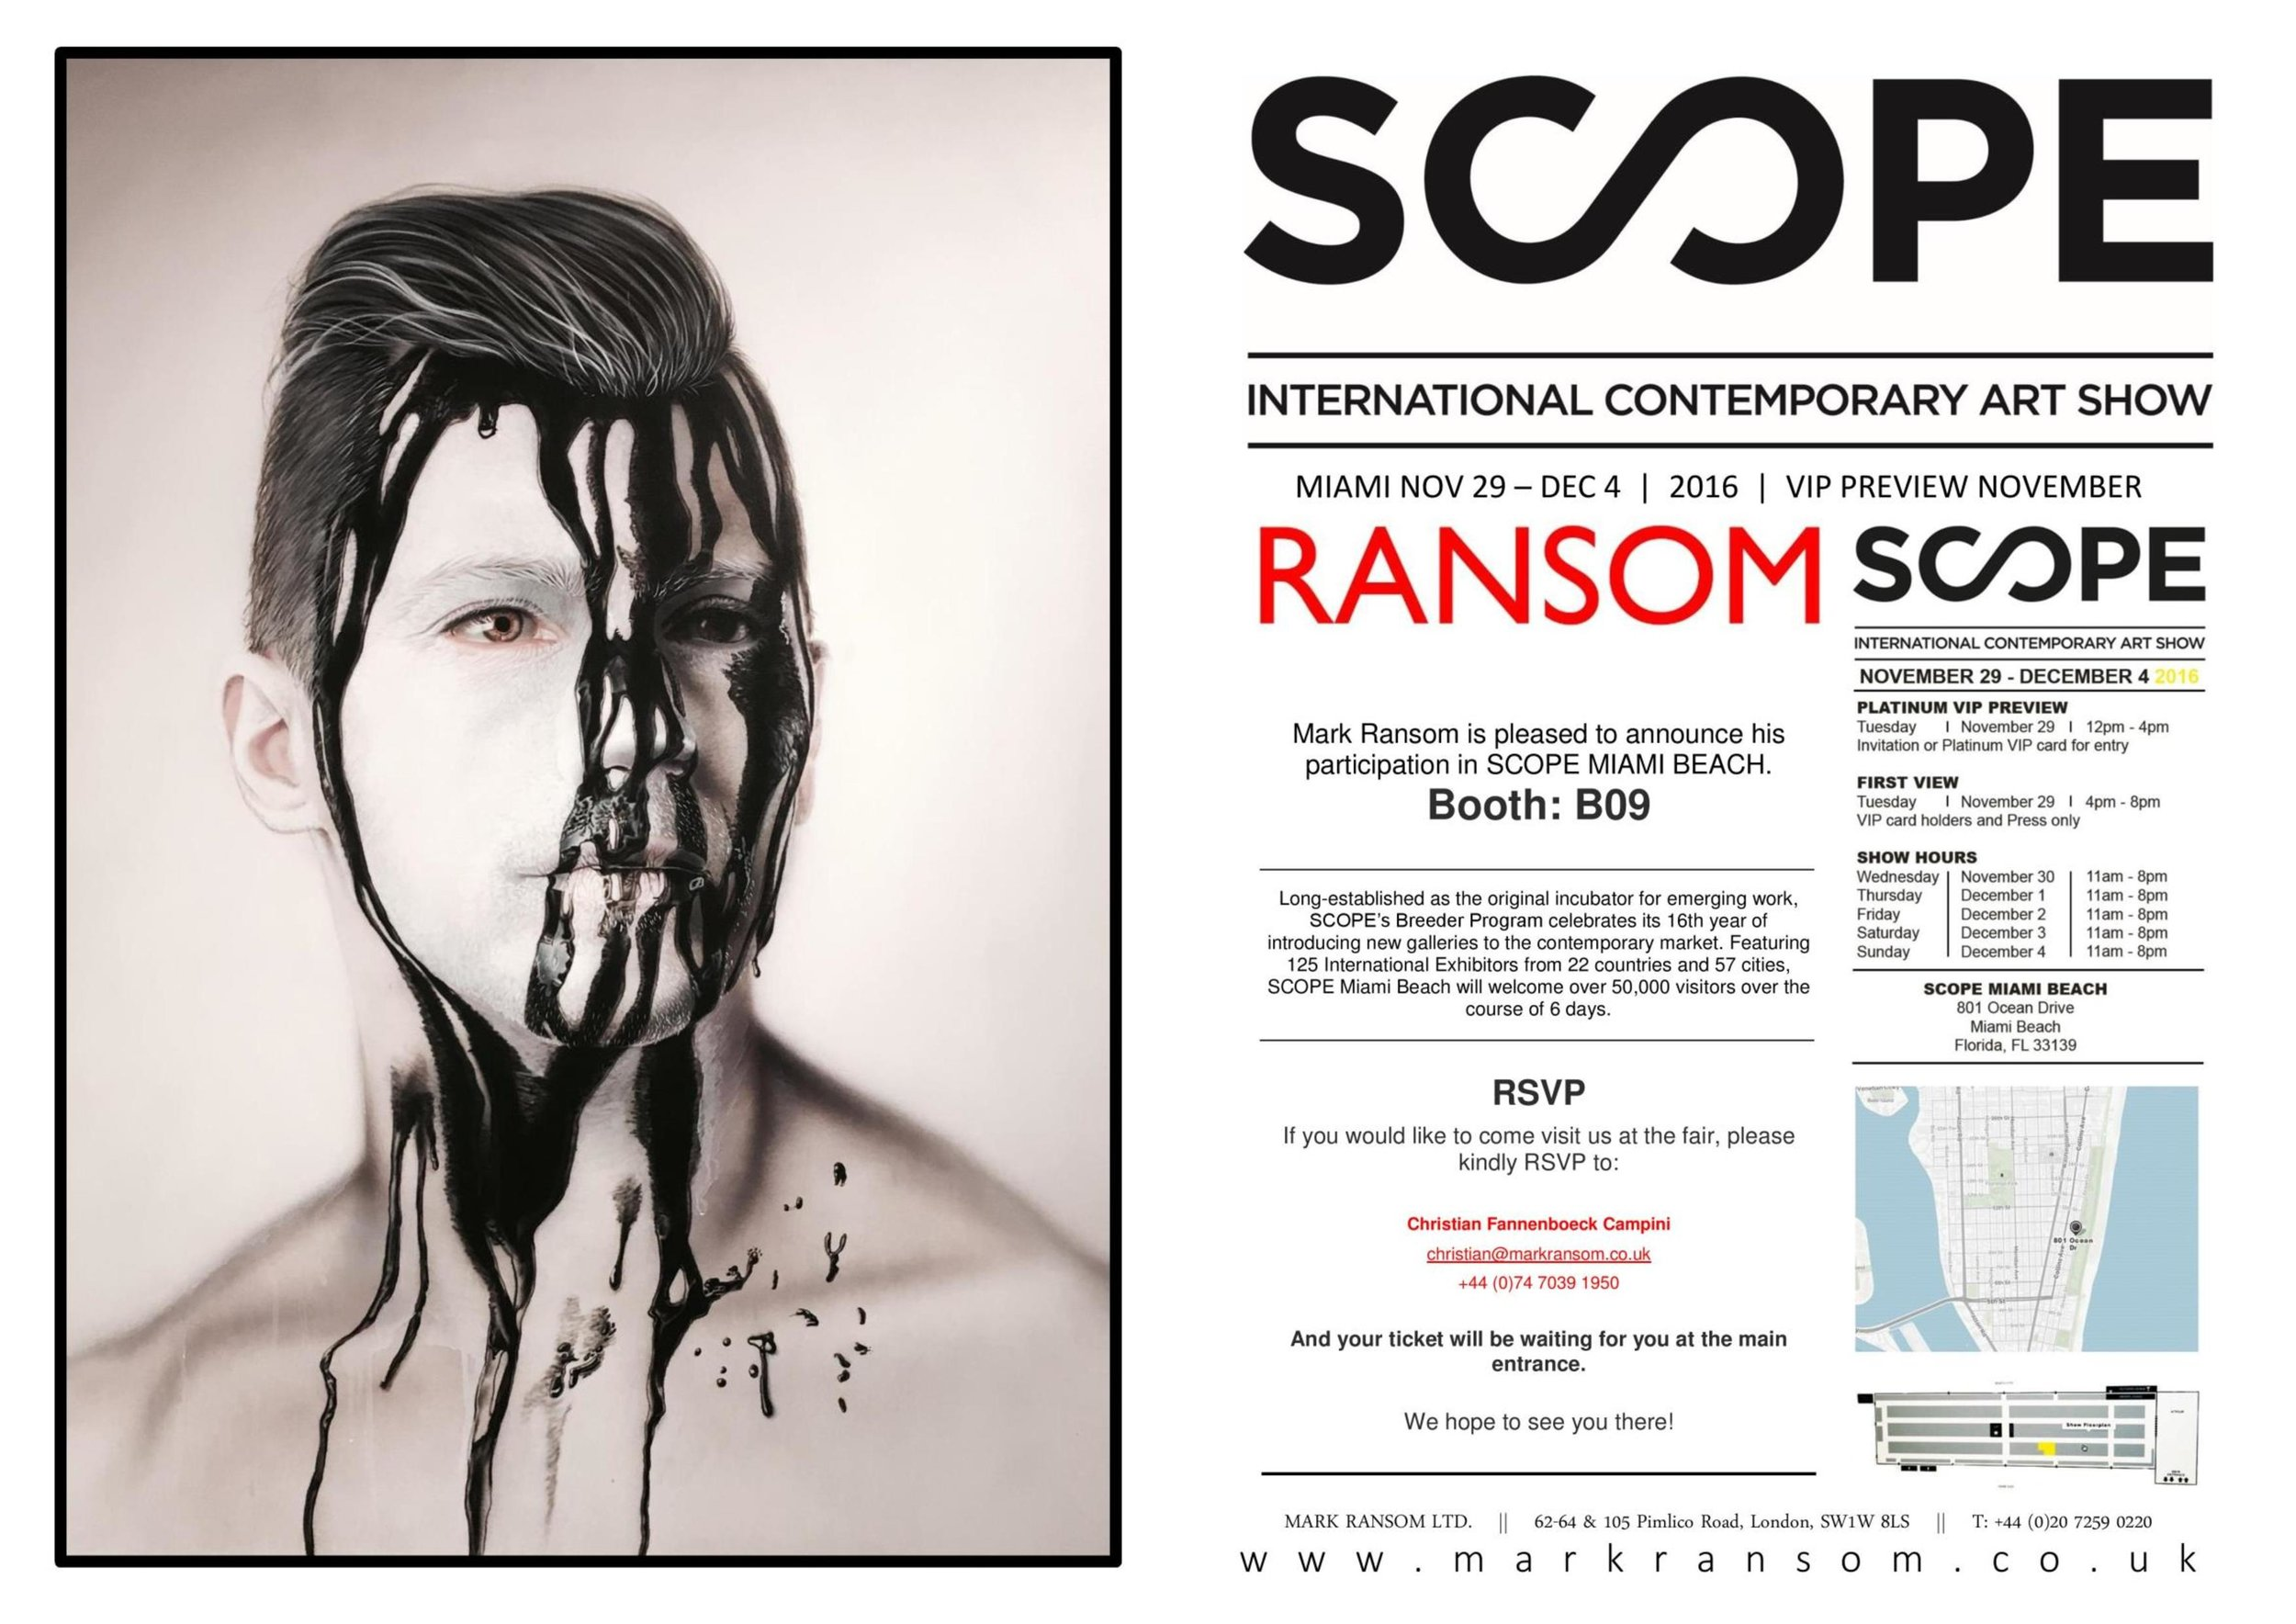 Scope Miami 2016 Invitation